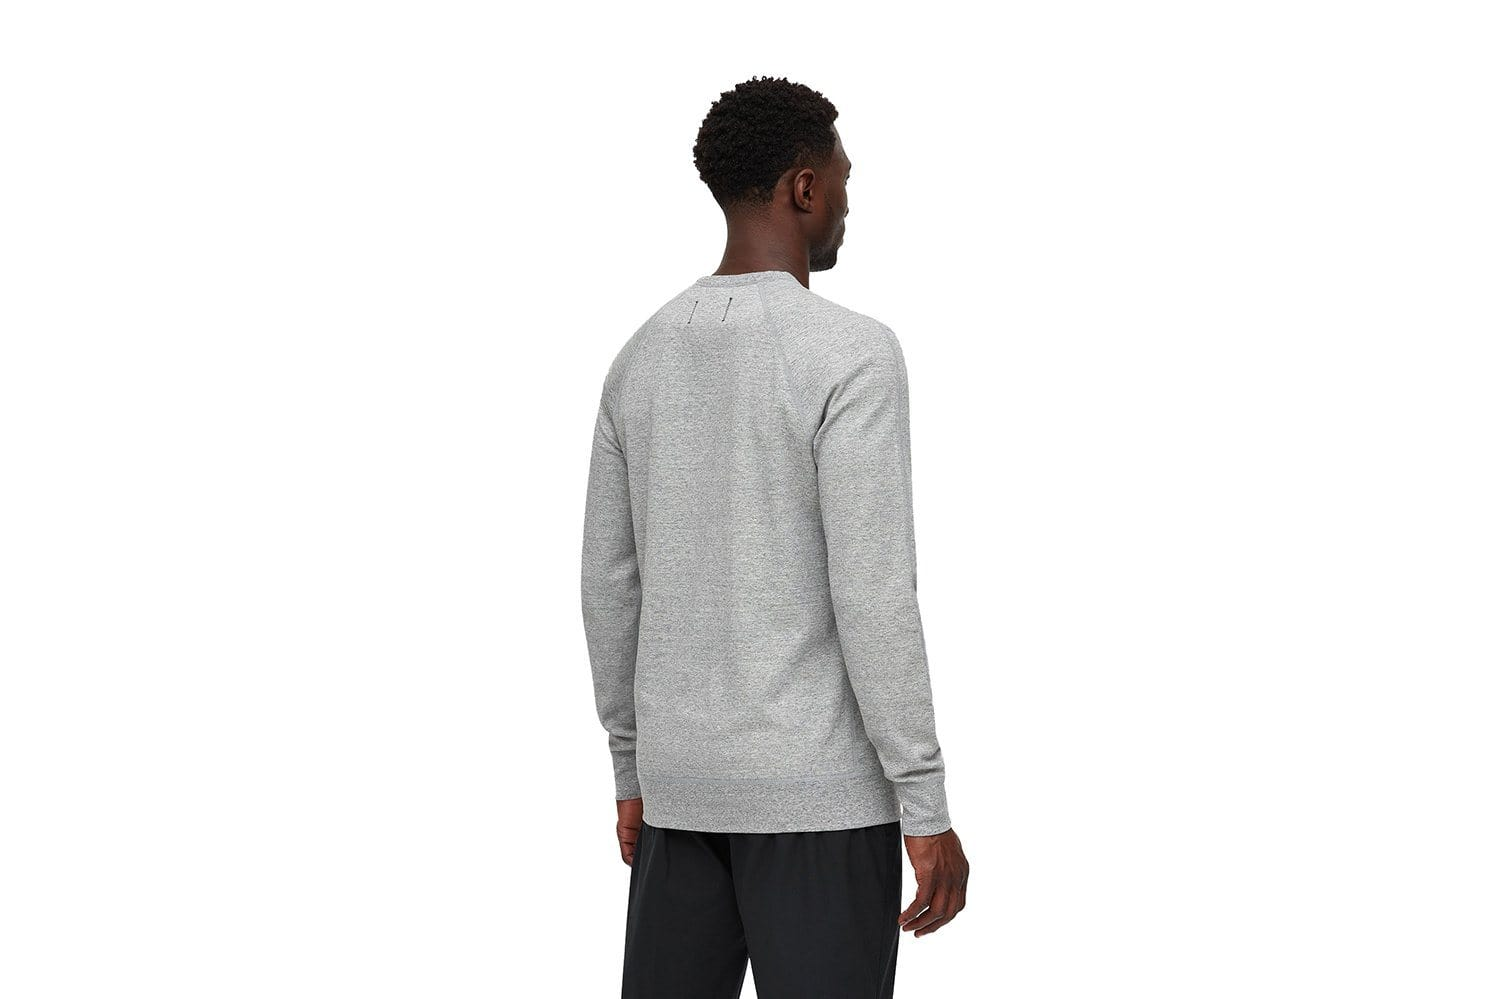 KNIT BRUSHED INTERLOCK CREWNECK - RC-2159 MENS SOFTGOODS REIGNING CHAMP